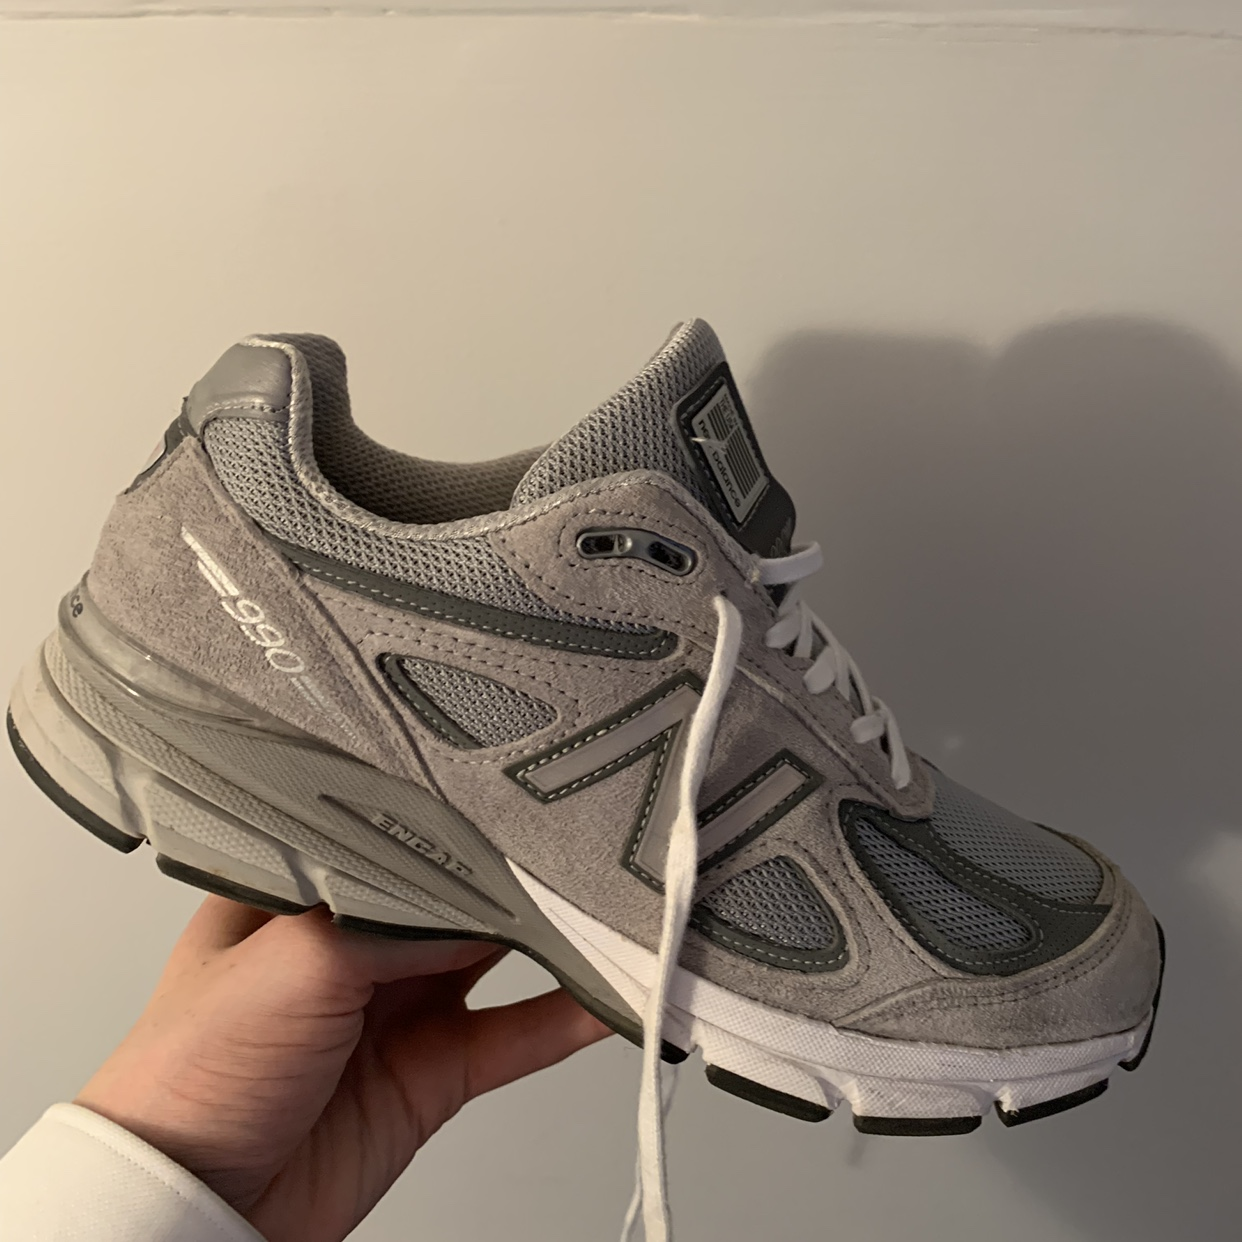 New Balance 990 V4 in a size 7. Great